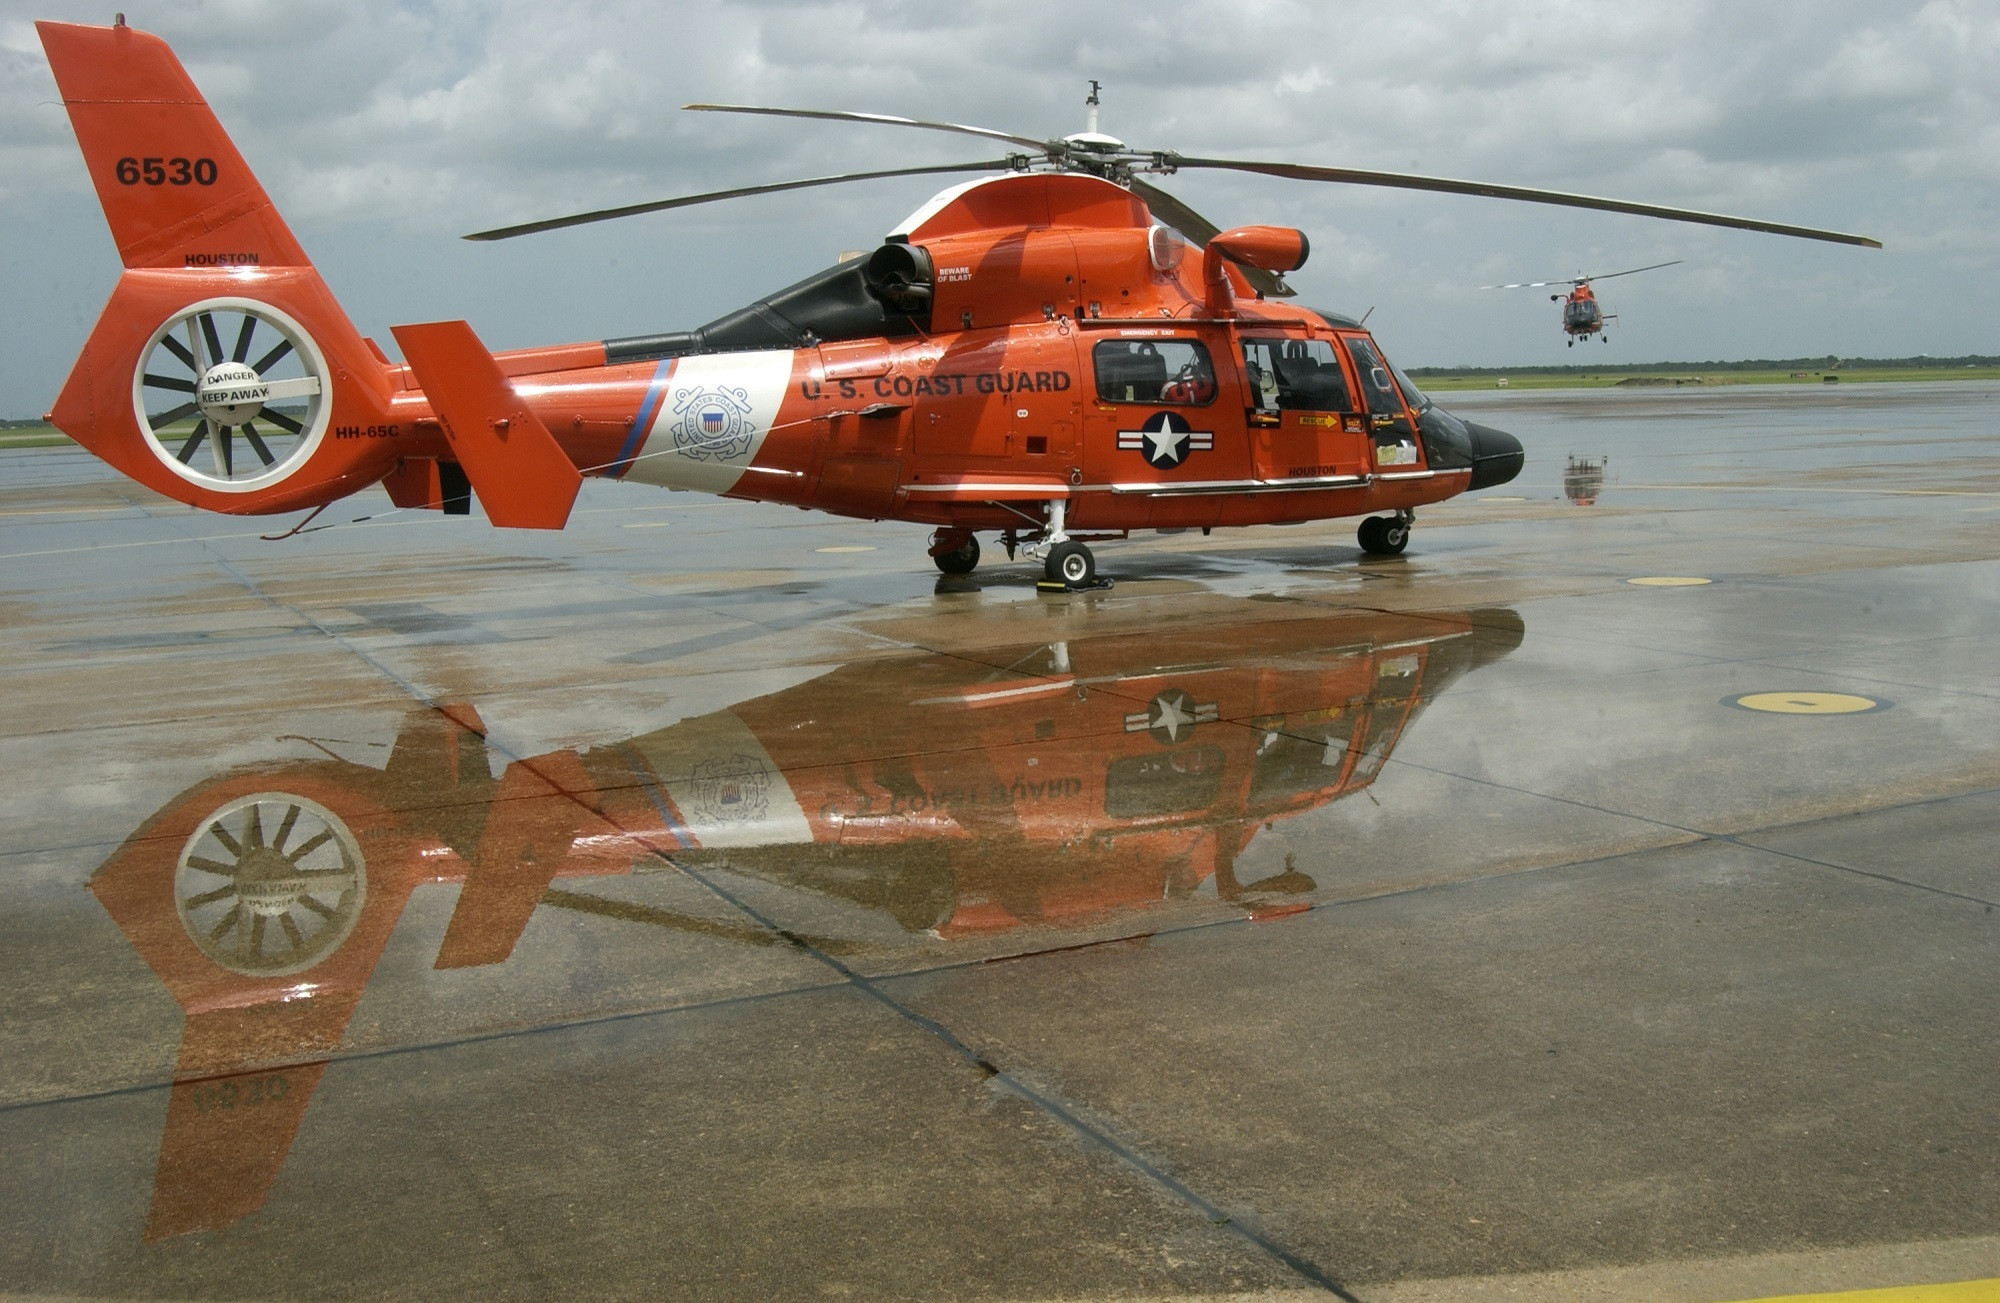 Coast Guard Helicopter, Coast, Flying, Guard, Heli, HQ Photo